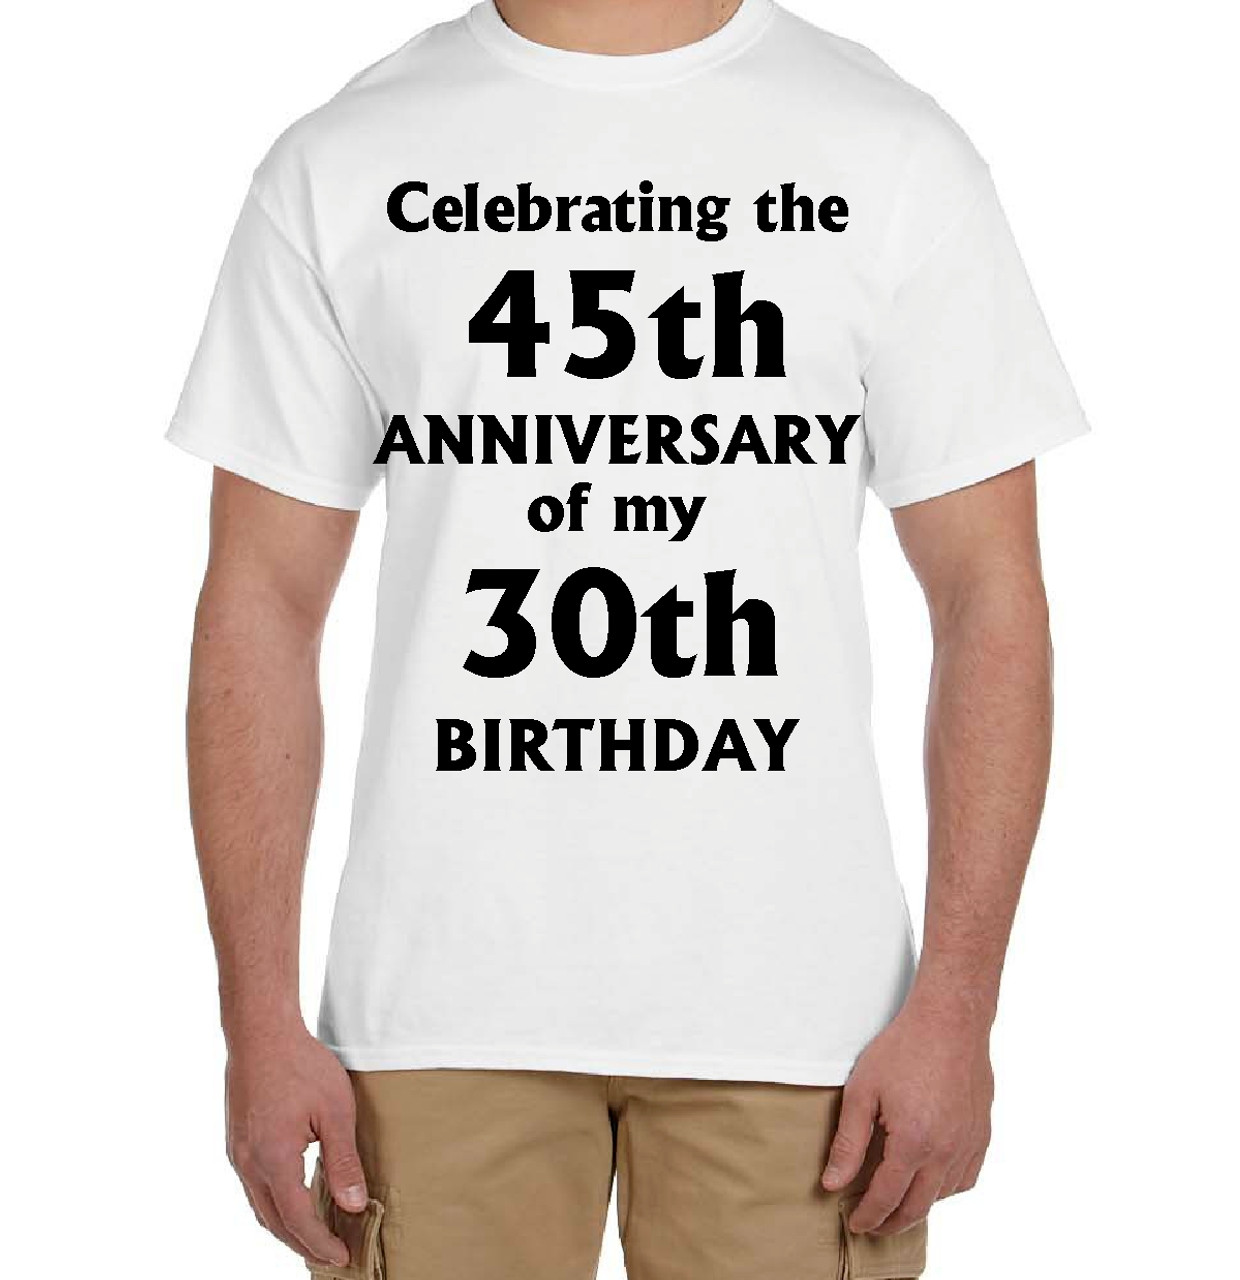 White 75th Birthday Shirt Disguised As 45th Anniversary Of 30th